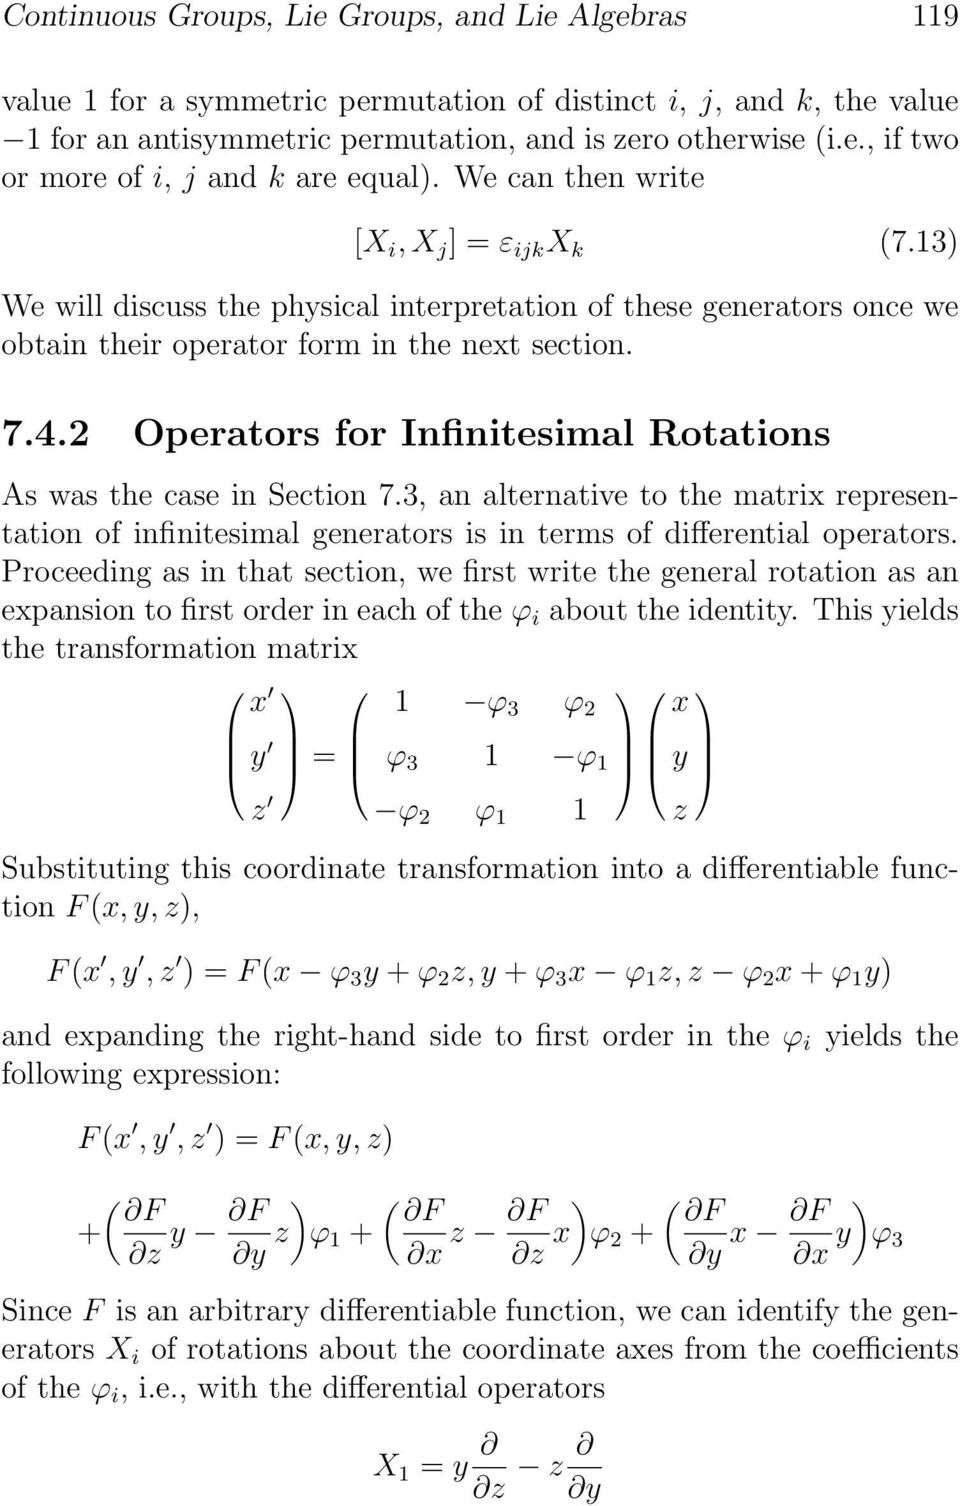 2 Operators for Infinitesimal Rotations As was the case in Section 7.3, an alternative to the matrix representation of infinitesimal generators is in terms of differential operators.